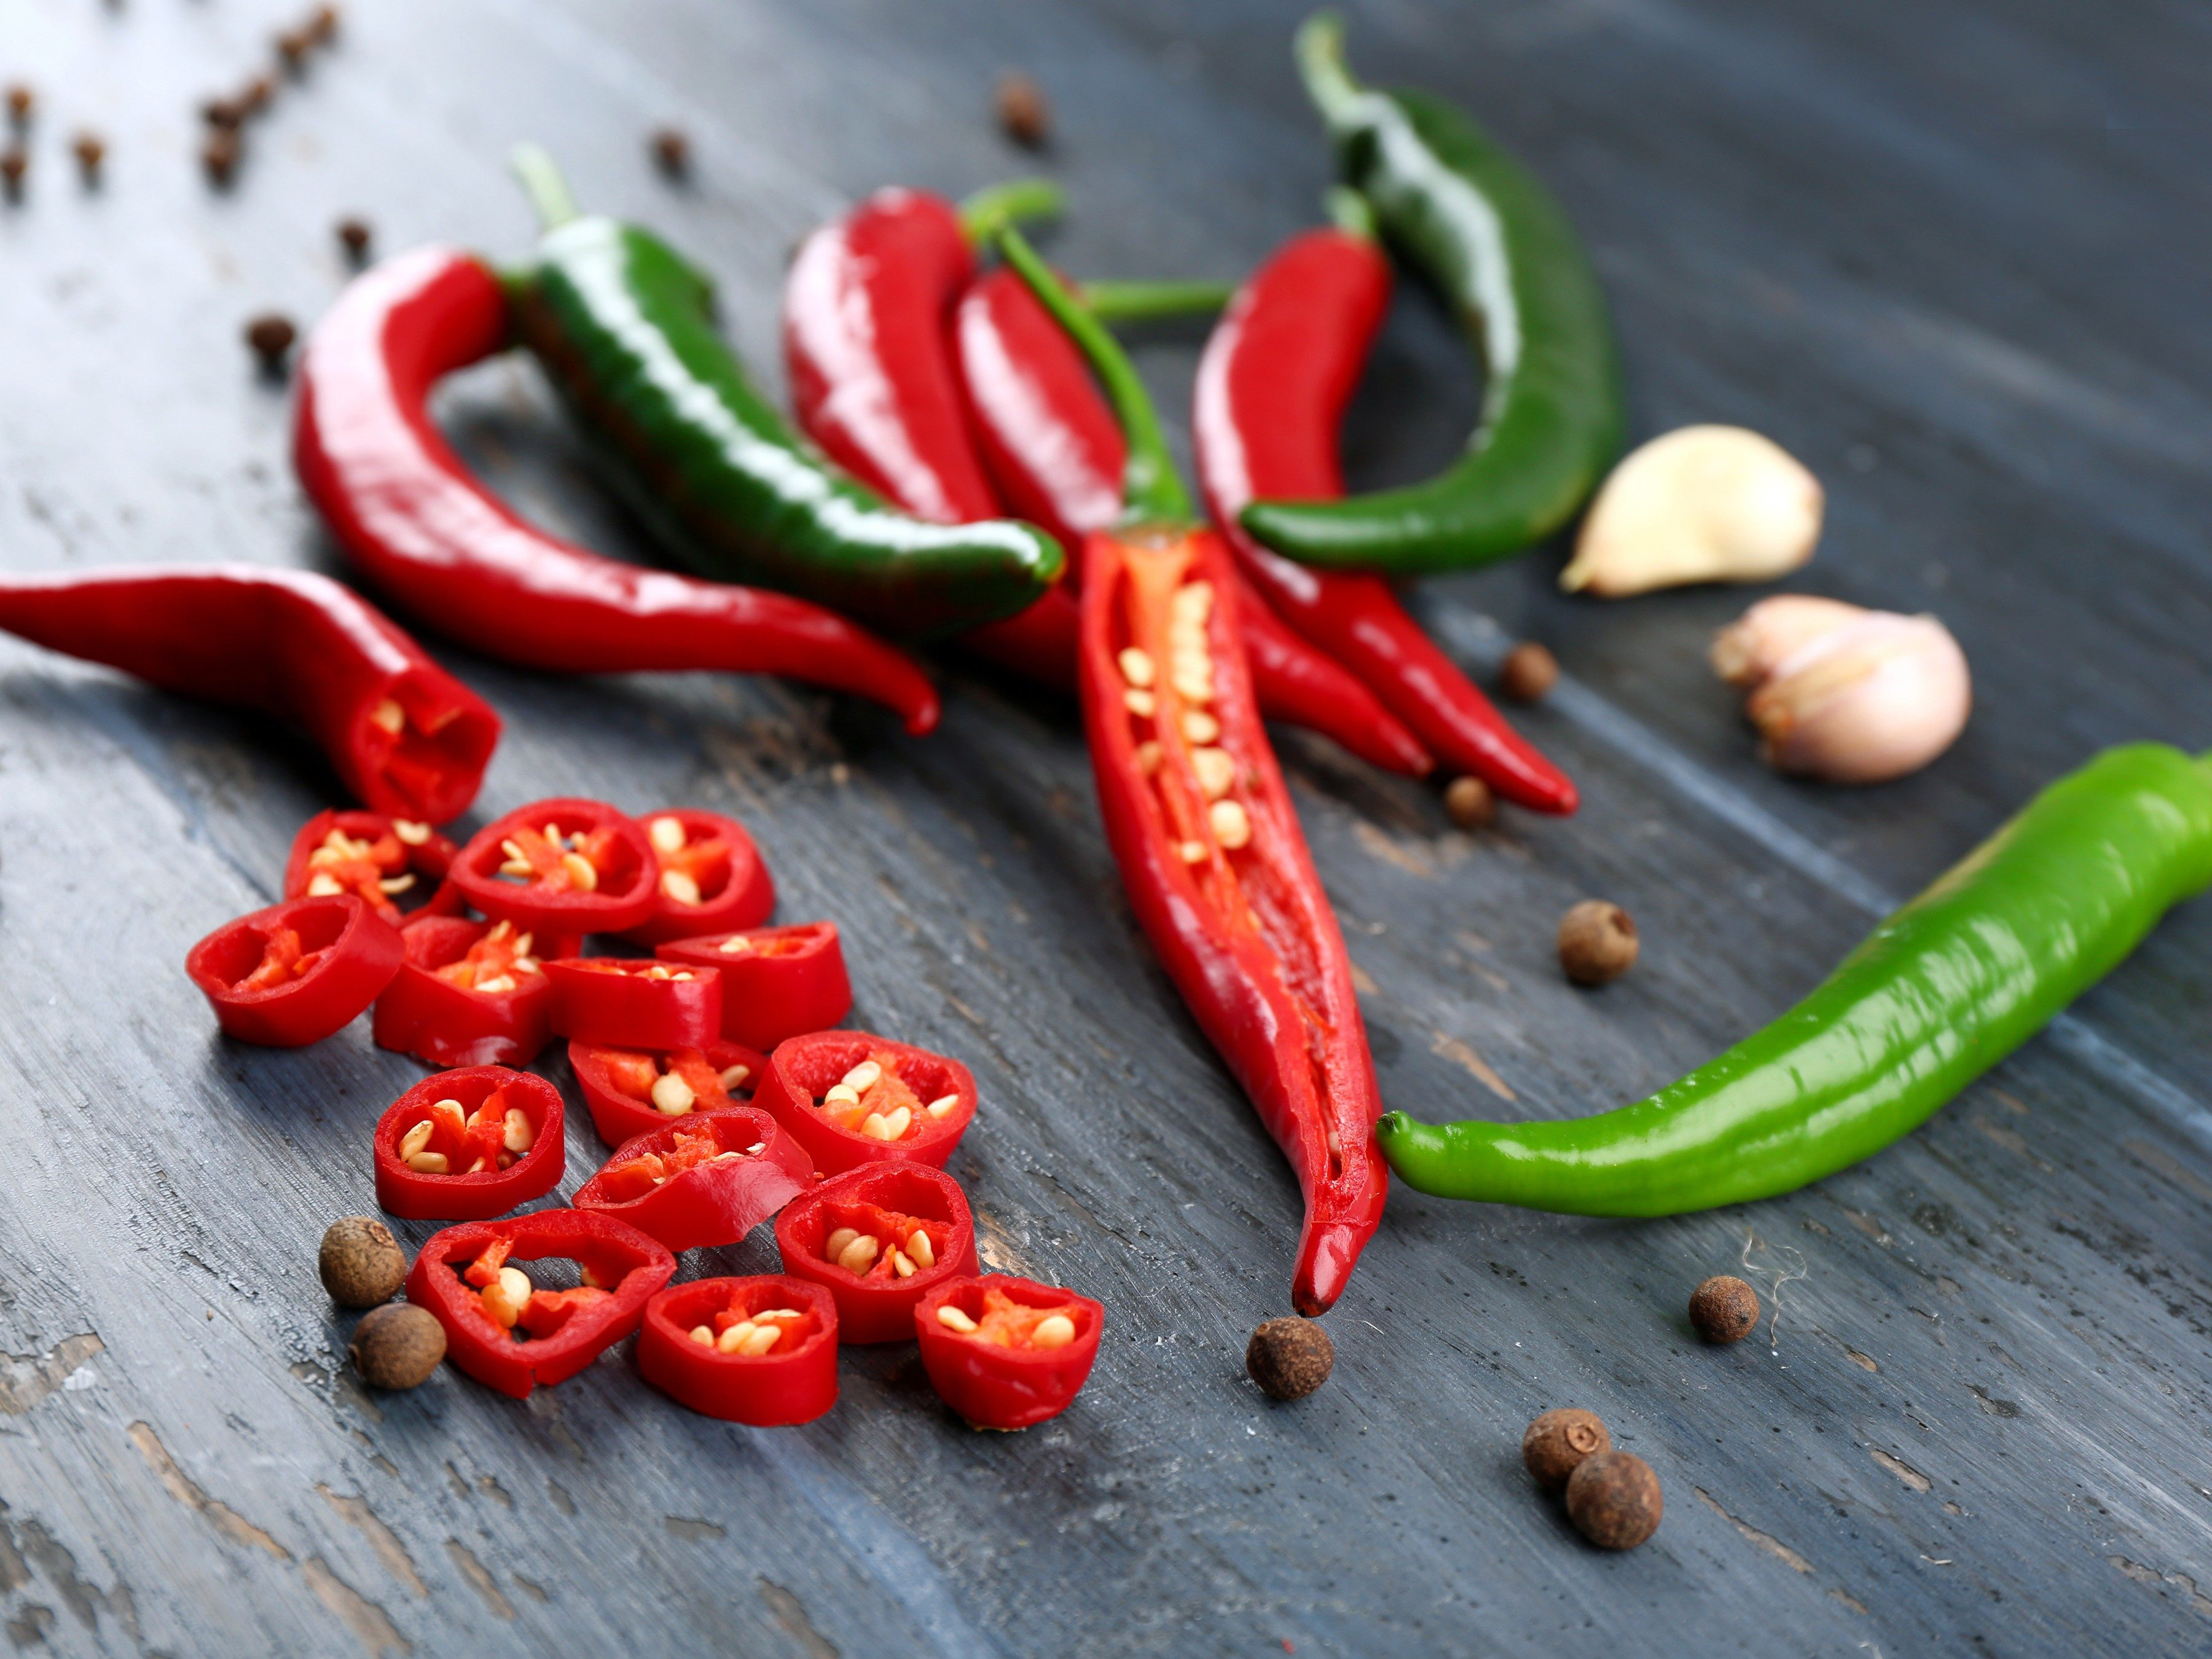 Natural back pain reliever #2: Capsaicin patch